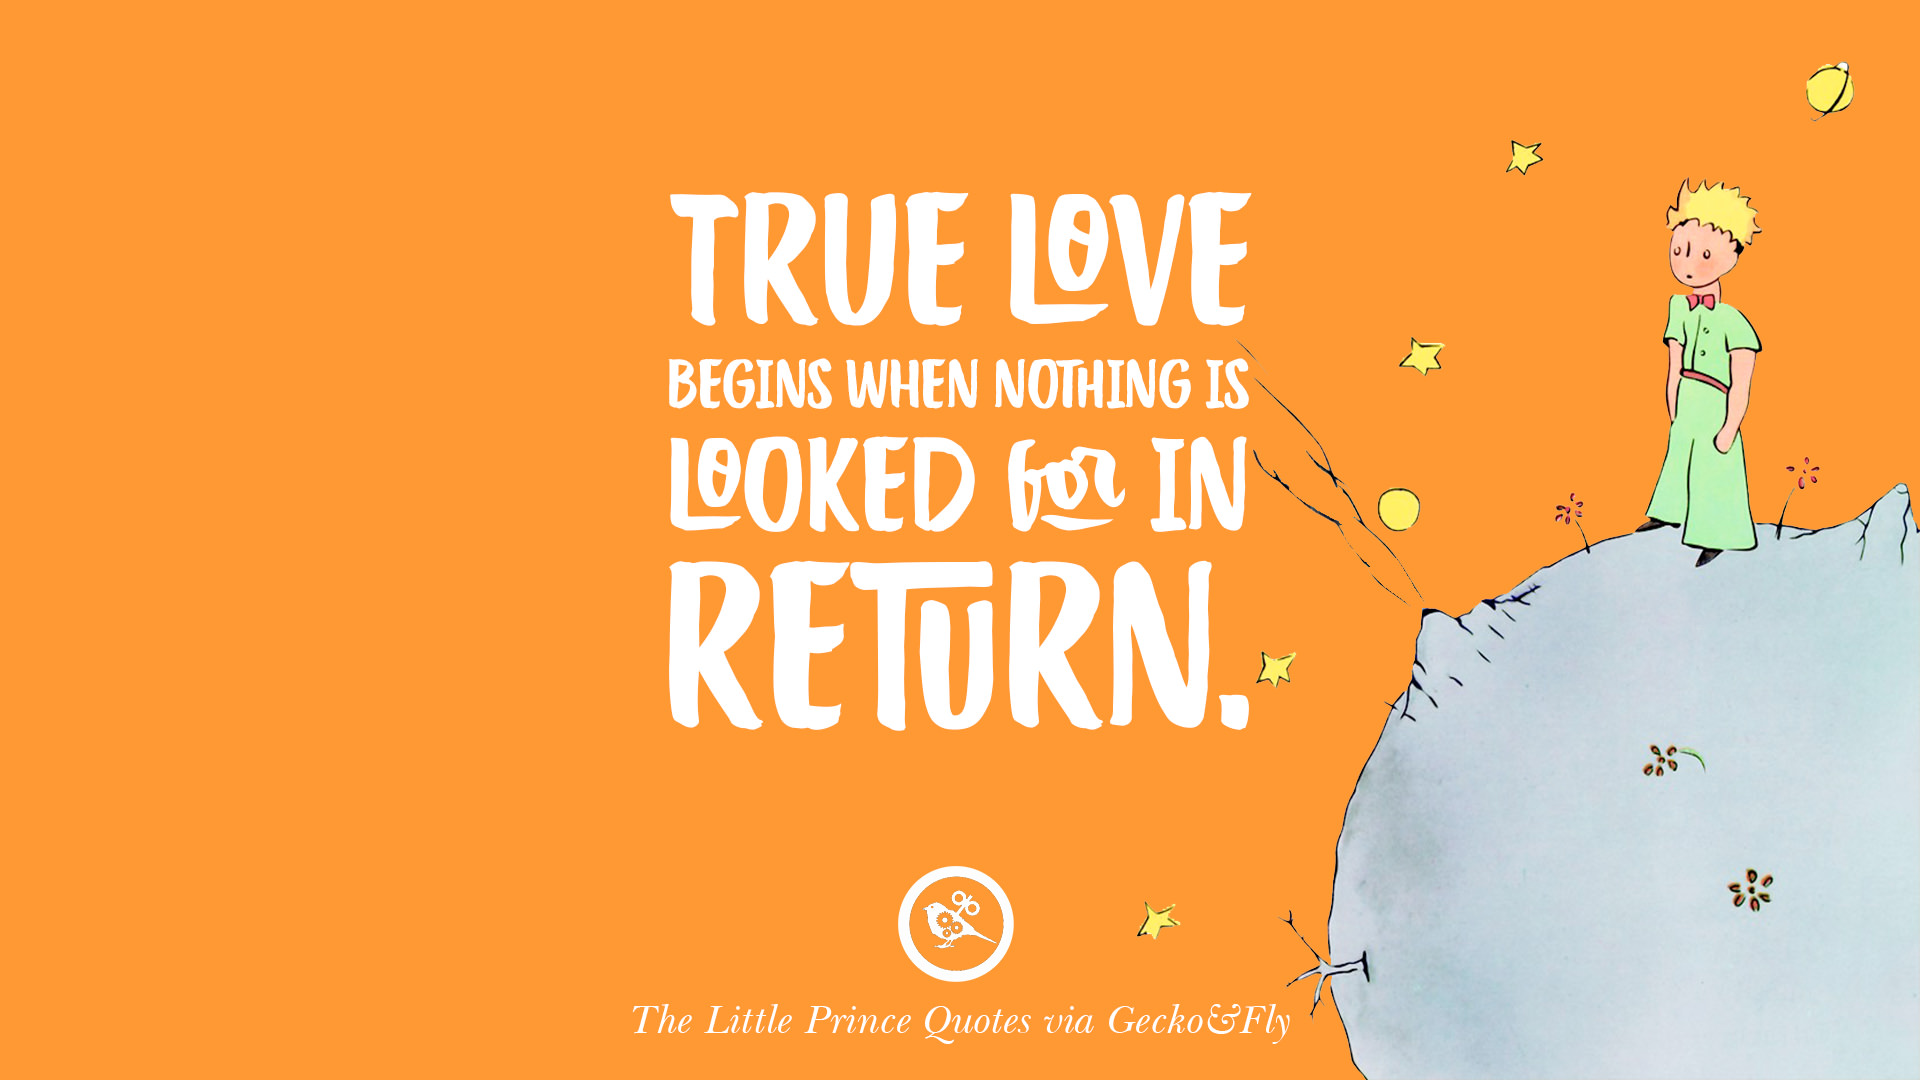 True Love Quotes: 12 Quotes By The Little Prince On Life Lesson, True Love